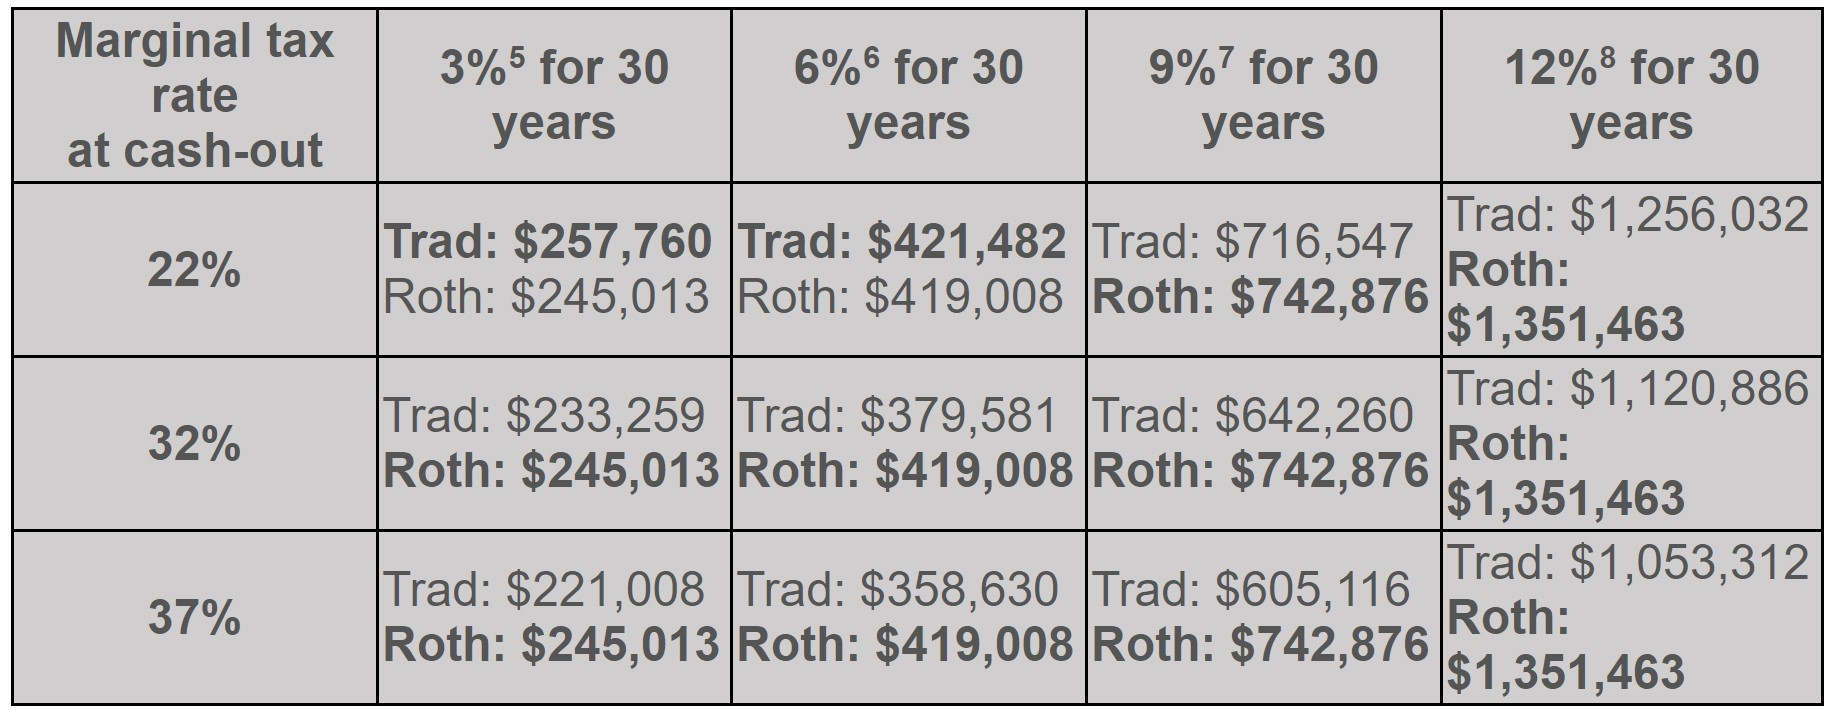 Roth vs Traditional IRA growth rate